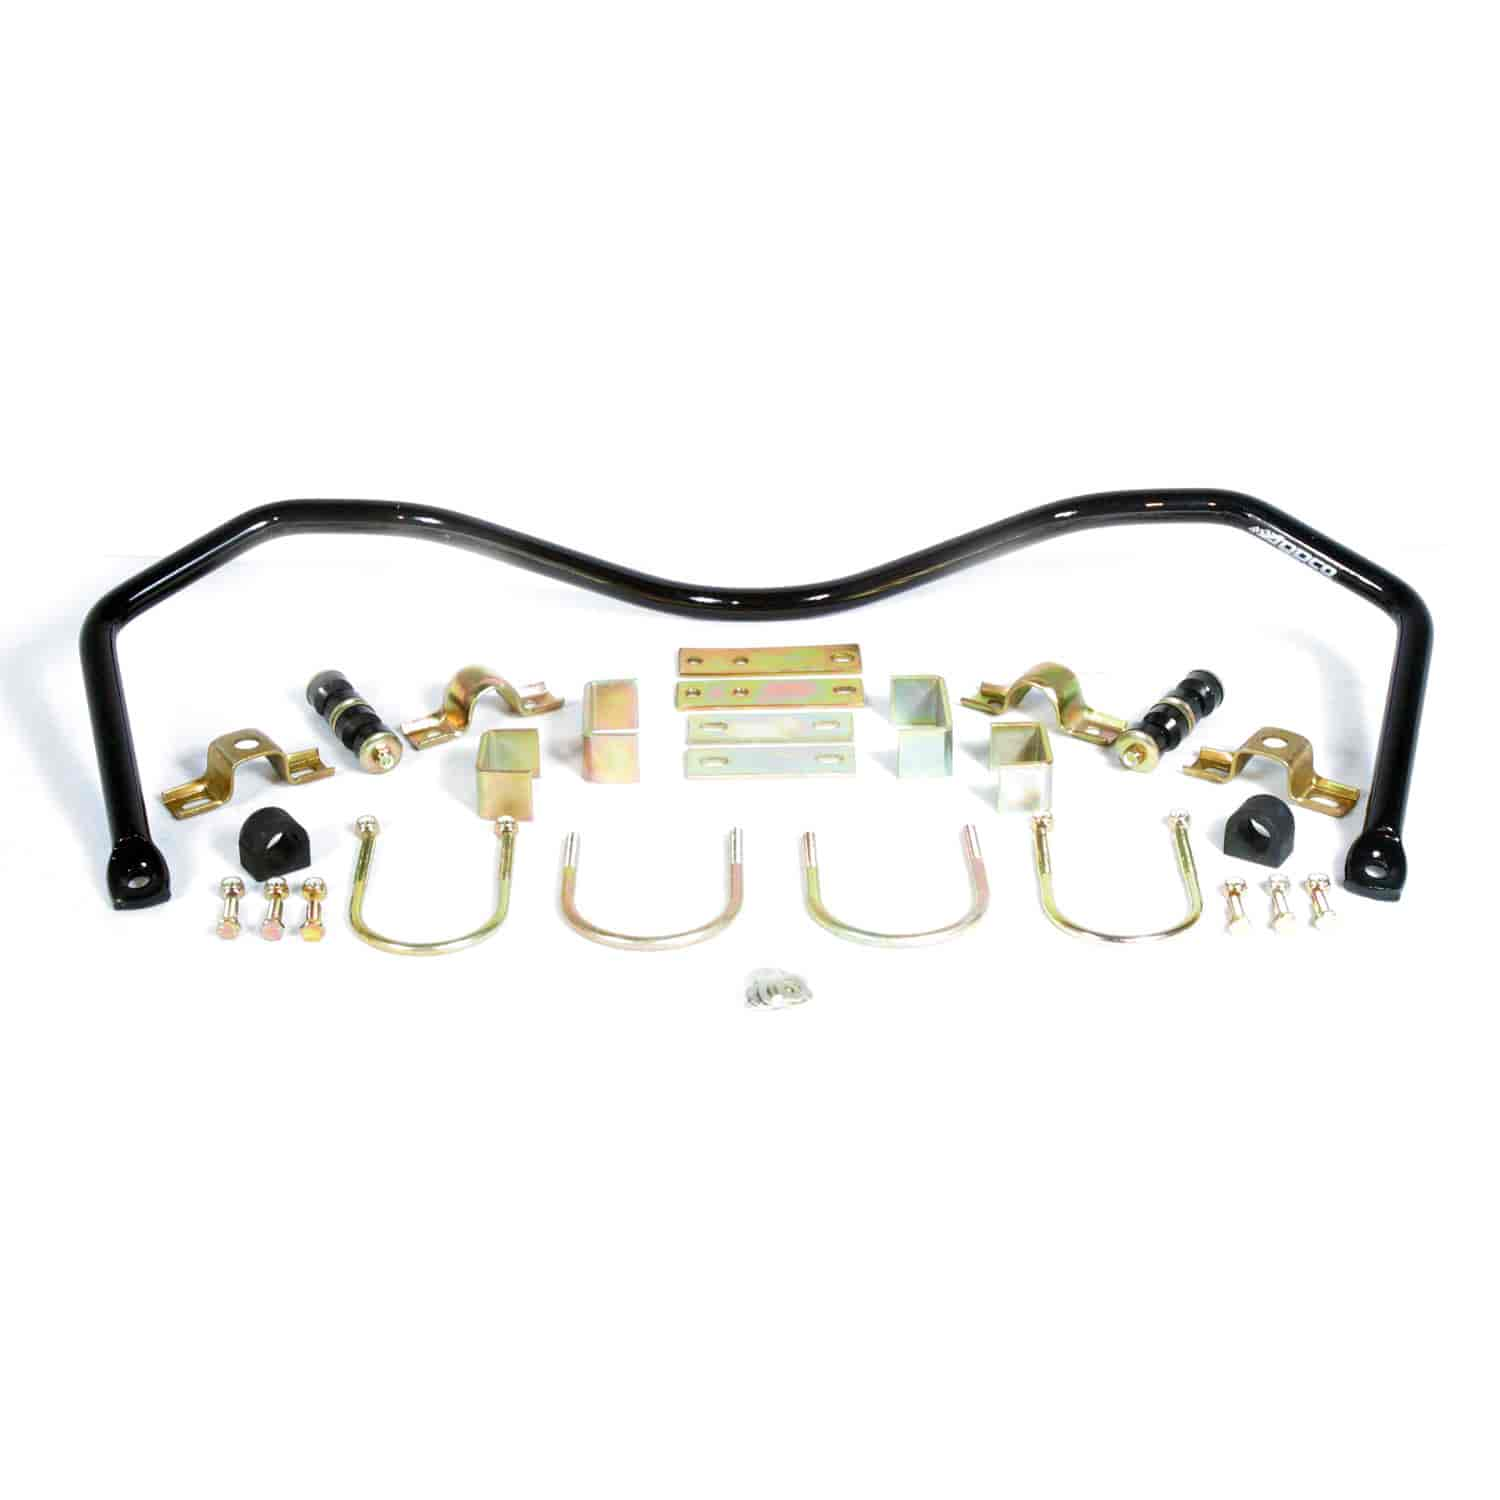 ADDCO 340 - ADDCO Ford/Lincoln/Mercury Sway Bar Kits